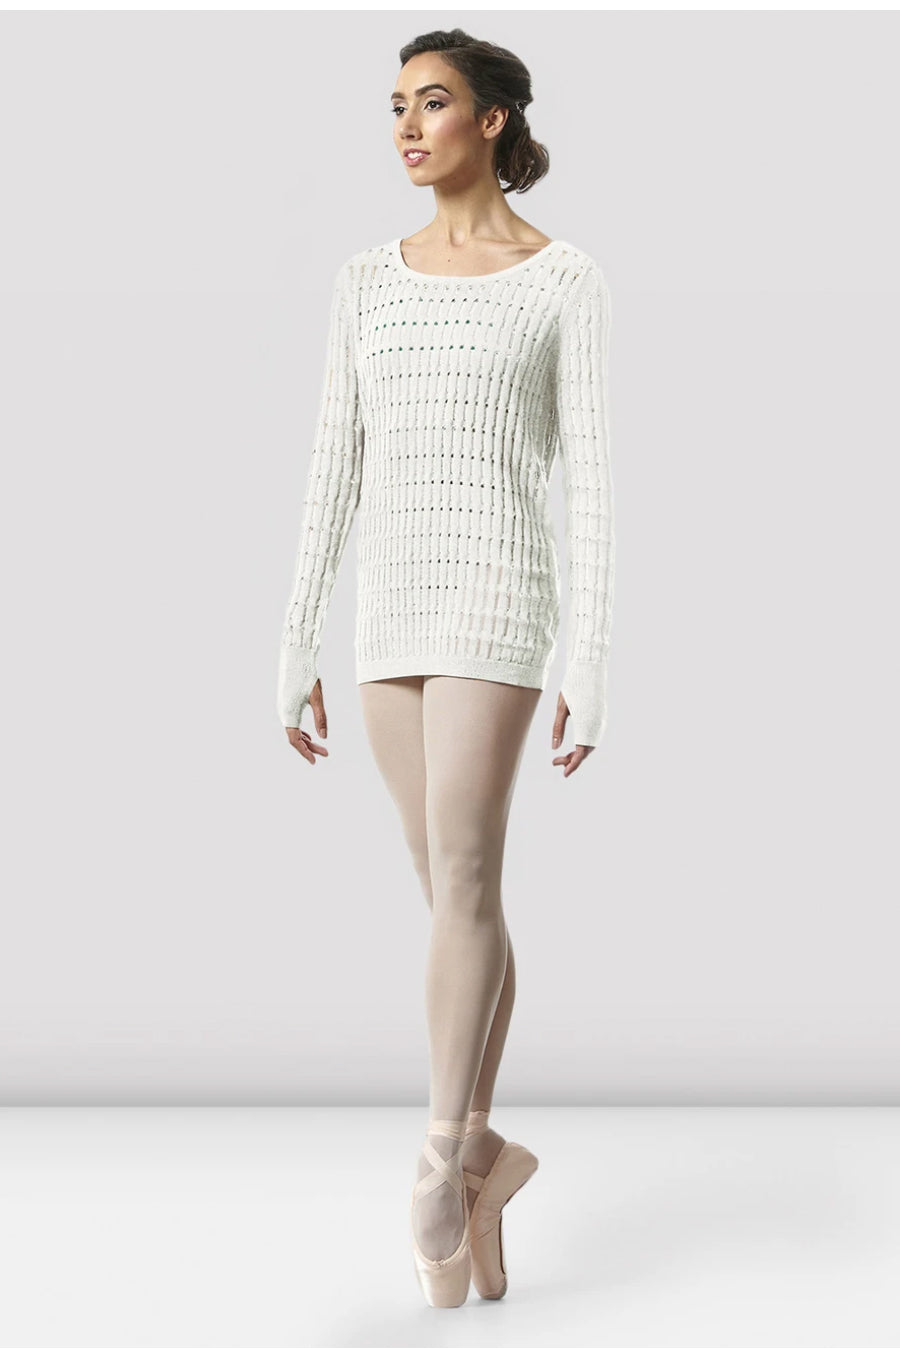 Bloch Ladies Shina Knit Warm-up Top - Z5529